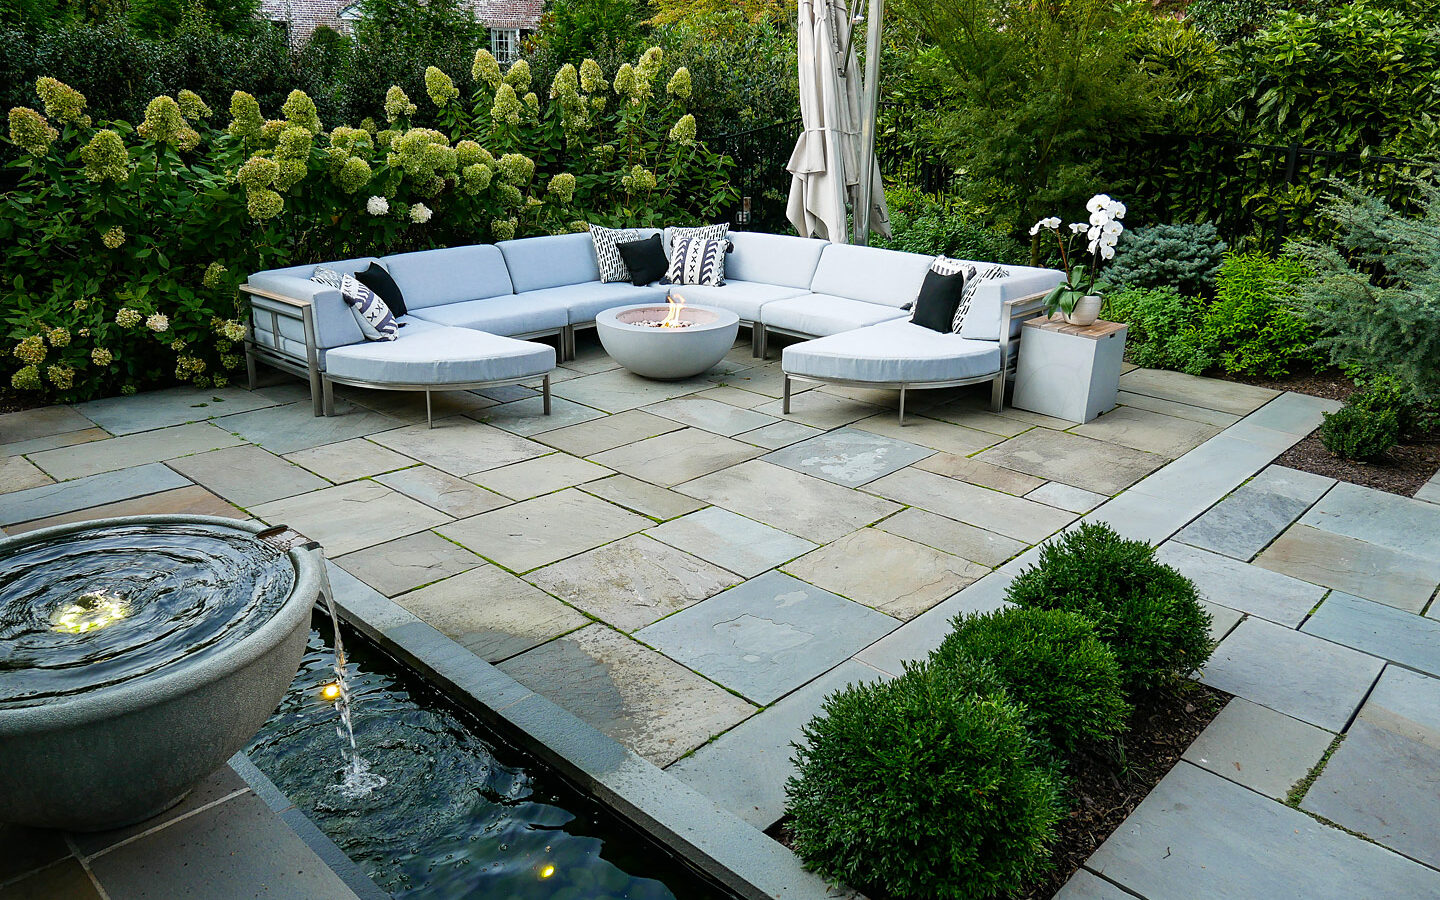 Patio with fountain and sitting area